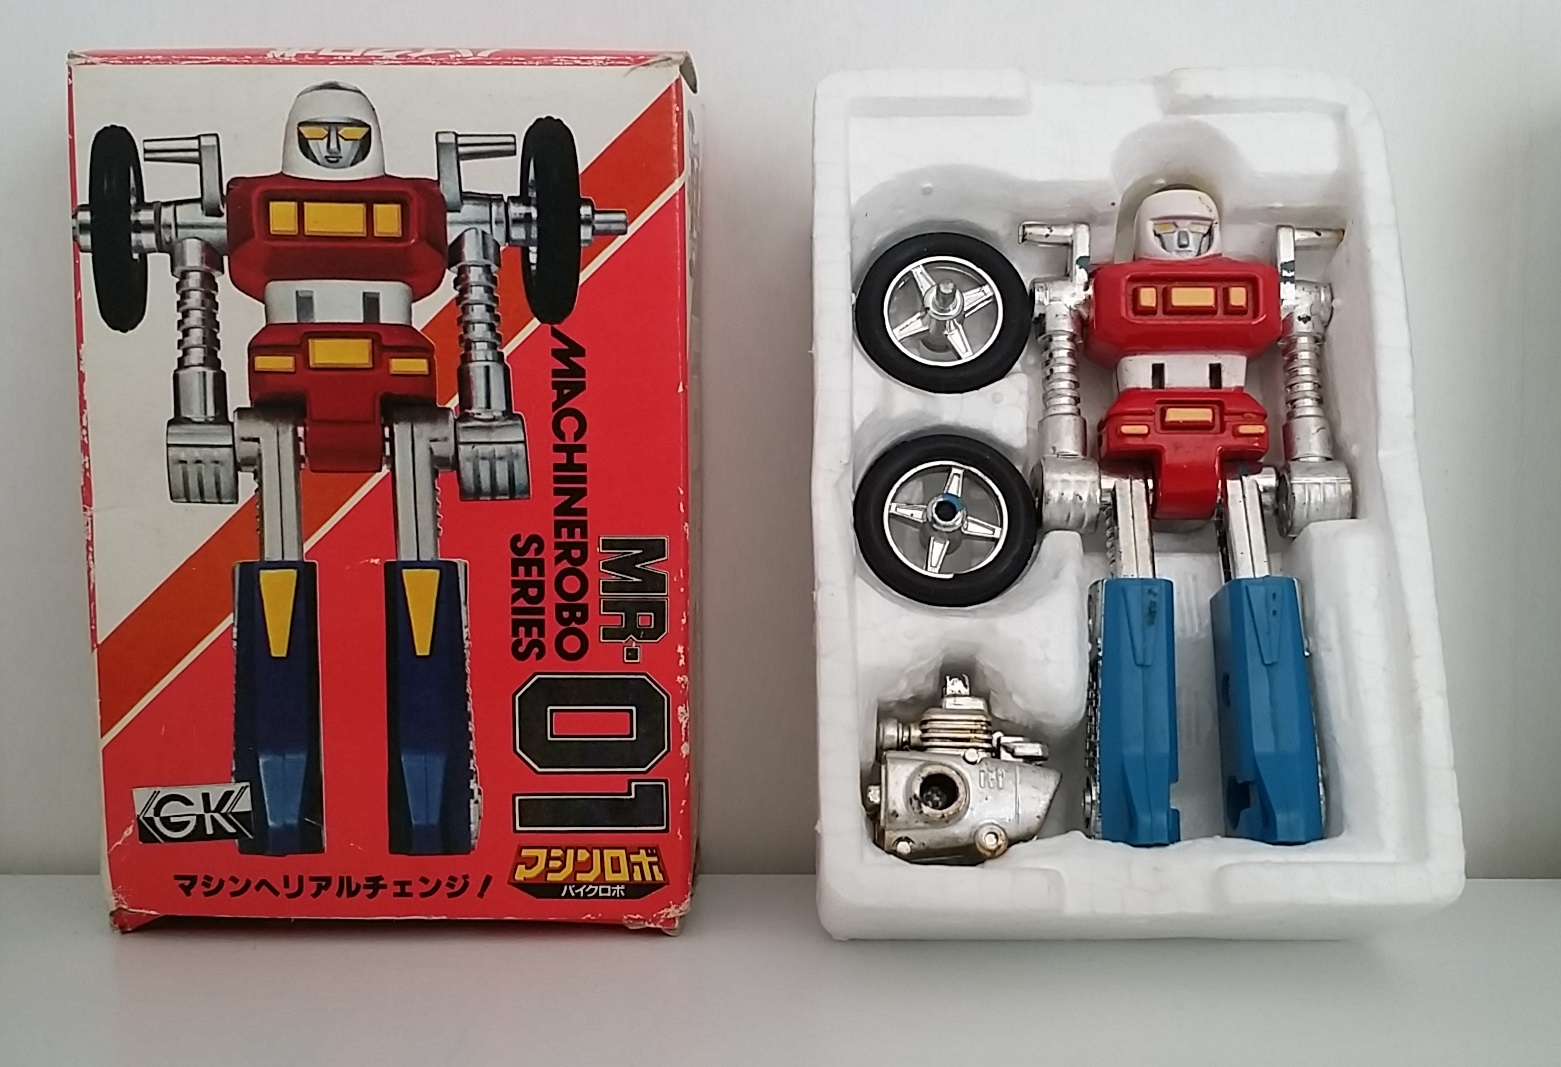 Machine Robo(マシンロボ) MachineRobo MR-01 Cy-Kill 1982 Popy Japan Bike Robo Machines Gobots Machine Men from anime Machine Robo Revenge of Cronos(Chronos no Gyakushuu マシンロボ クロノスの大逆襲) 1988-1989 and Challenge of the Gobots 1983-1987 La Revanche des Gobots in France